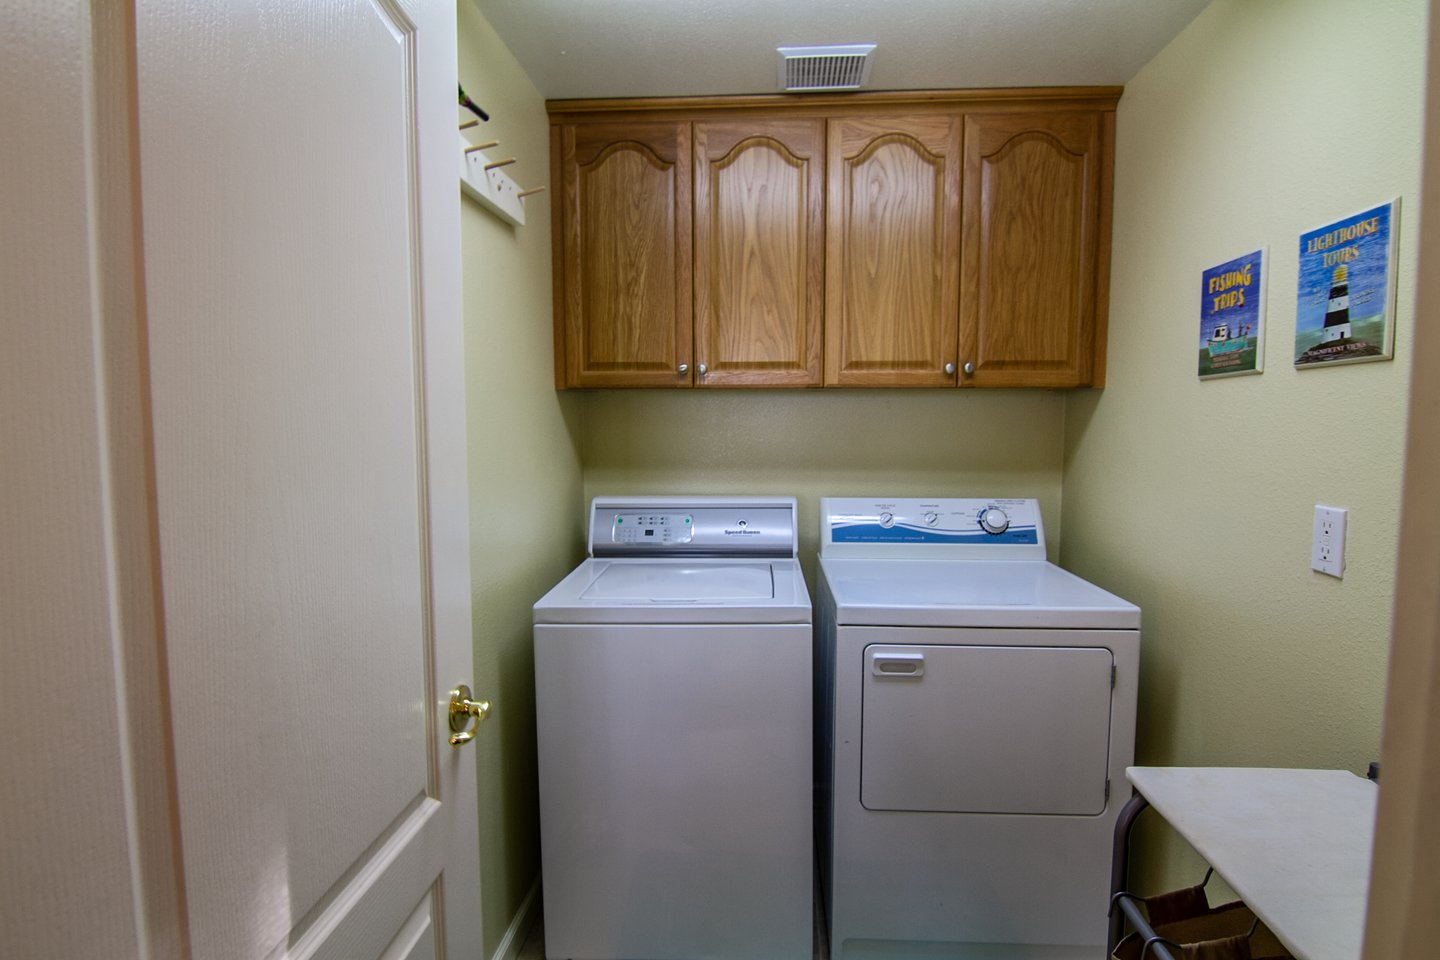 Wash and dryer are in house for your convenience.